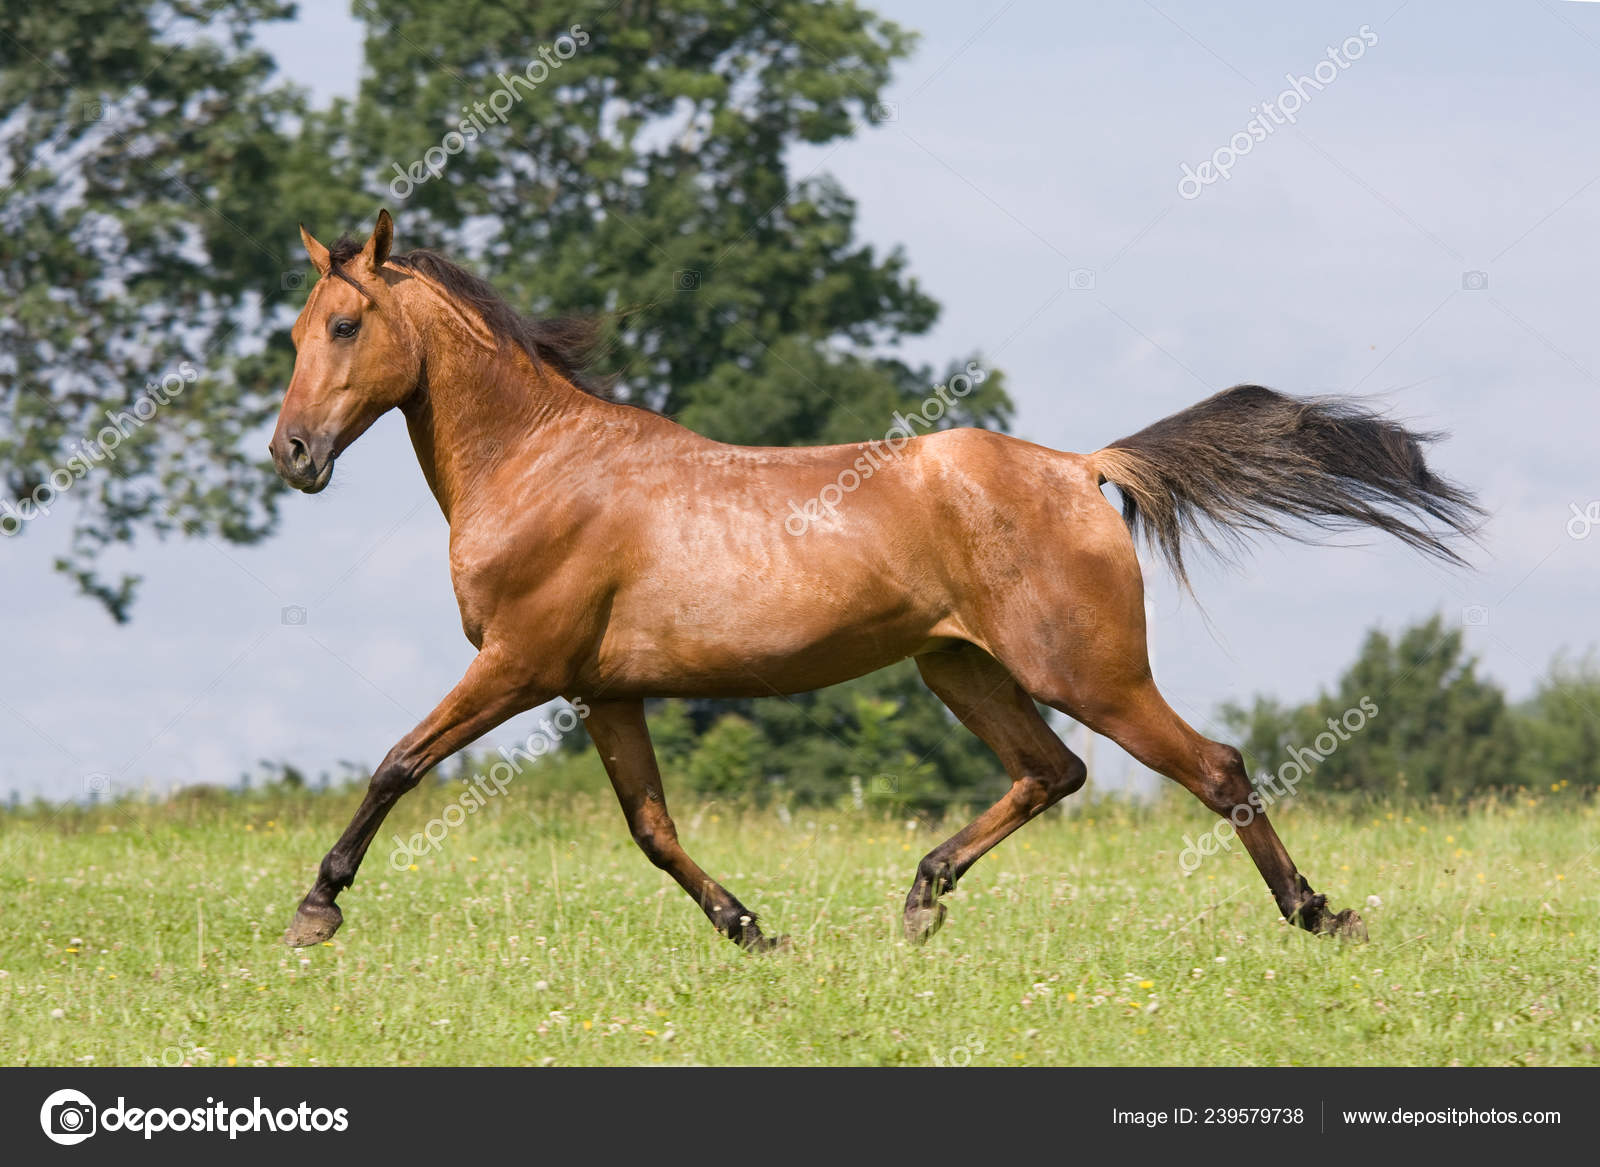 ᐈ Beautiful Horses Stock Pictures Royalty Free Arabian Horse Images Download On Depositphotos